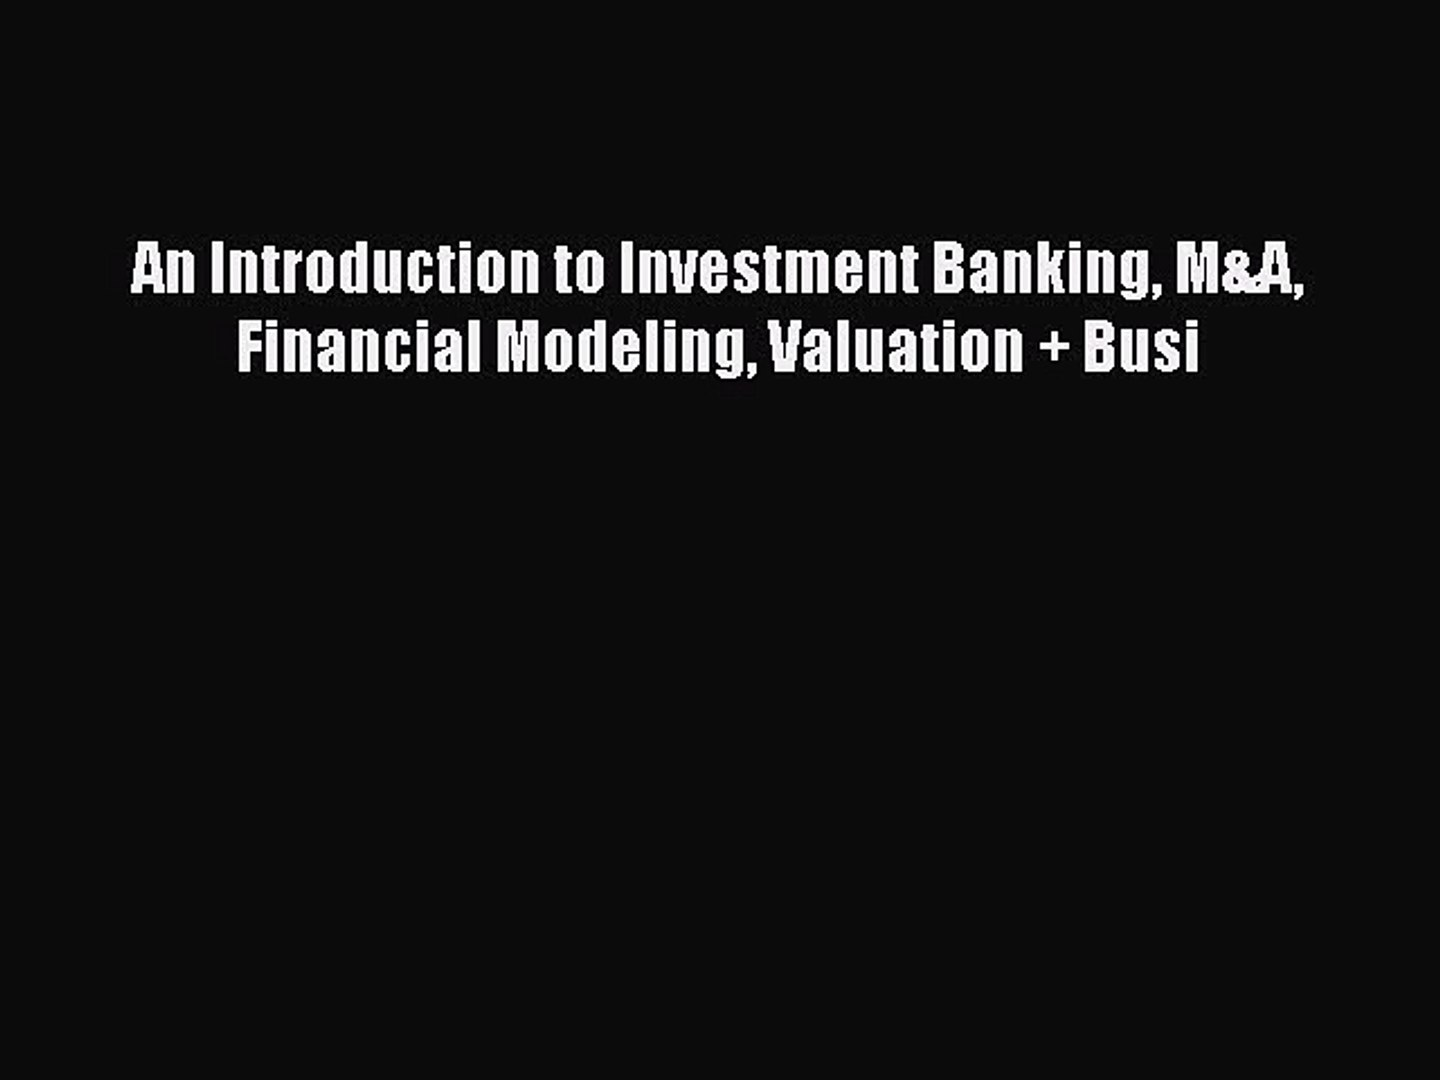 [Online PDF] An Introduction to Investment Banking M&A Financial Modeling Valuation + Busi